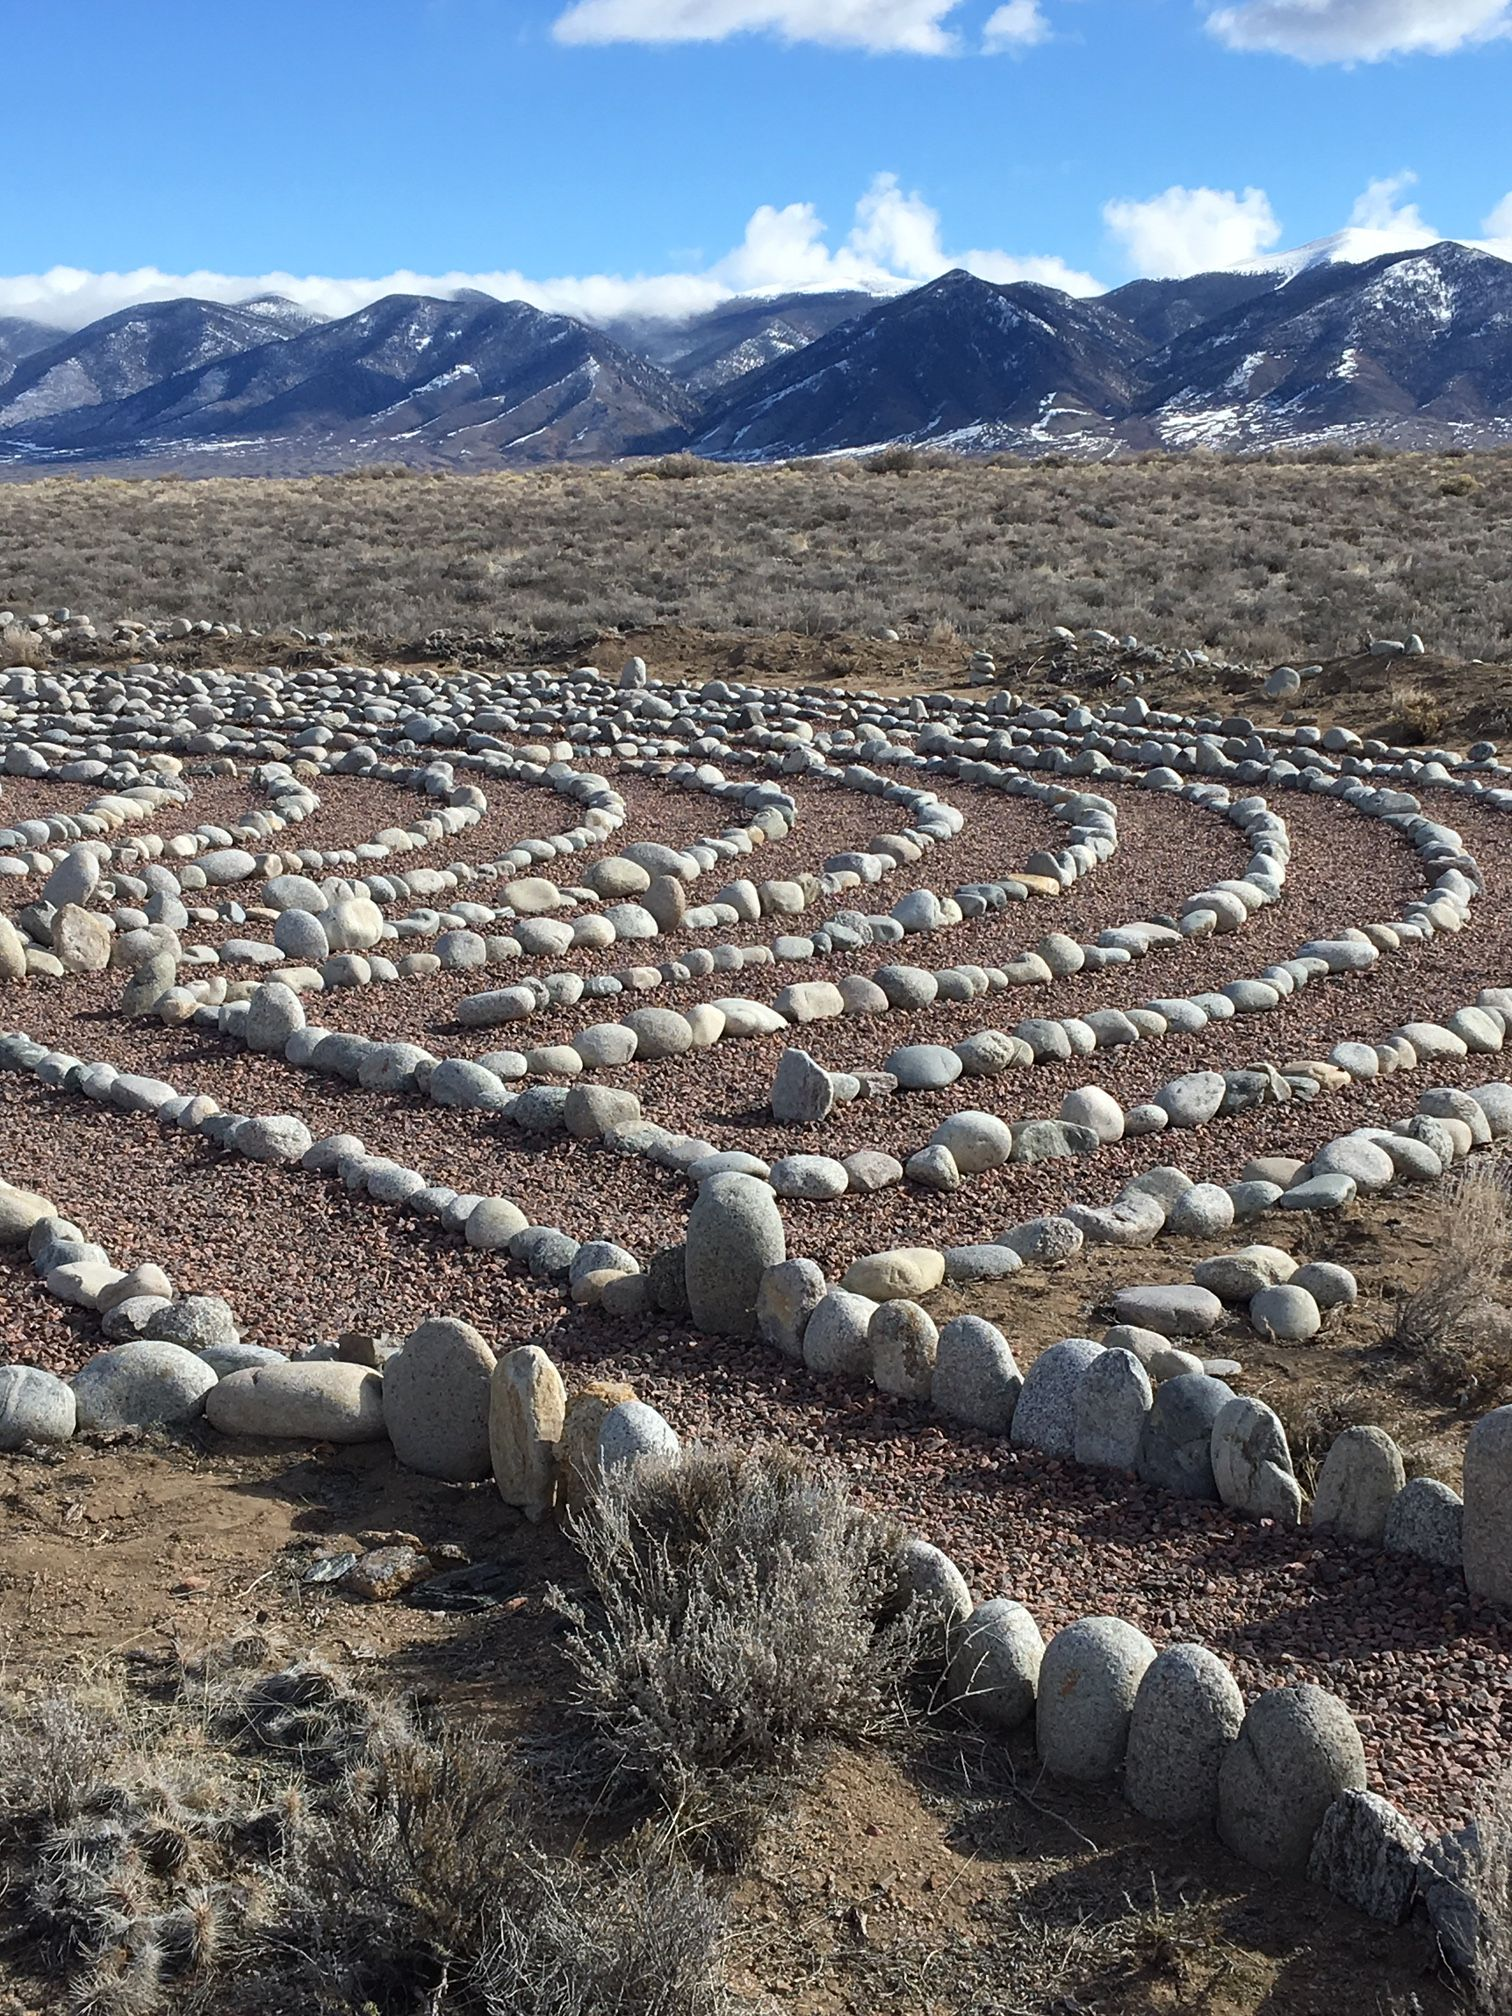 The walking labyrinth at Joyful Journey Hot Springs Spa